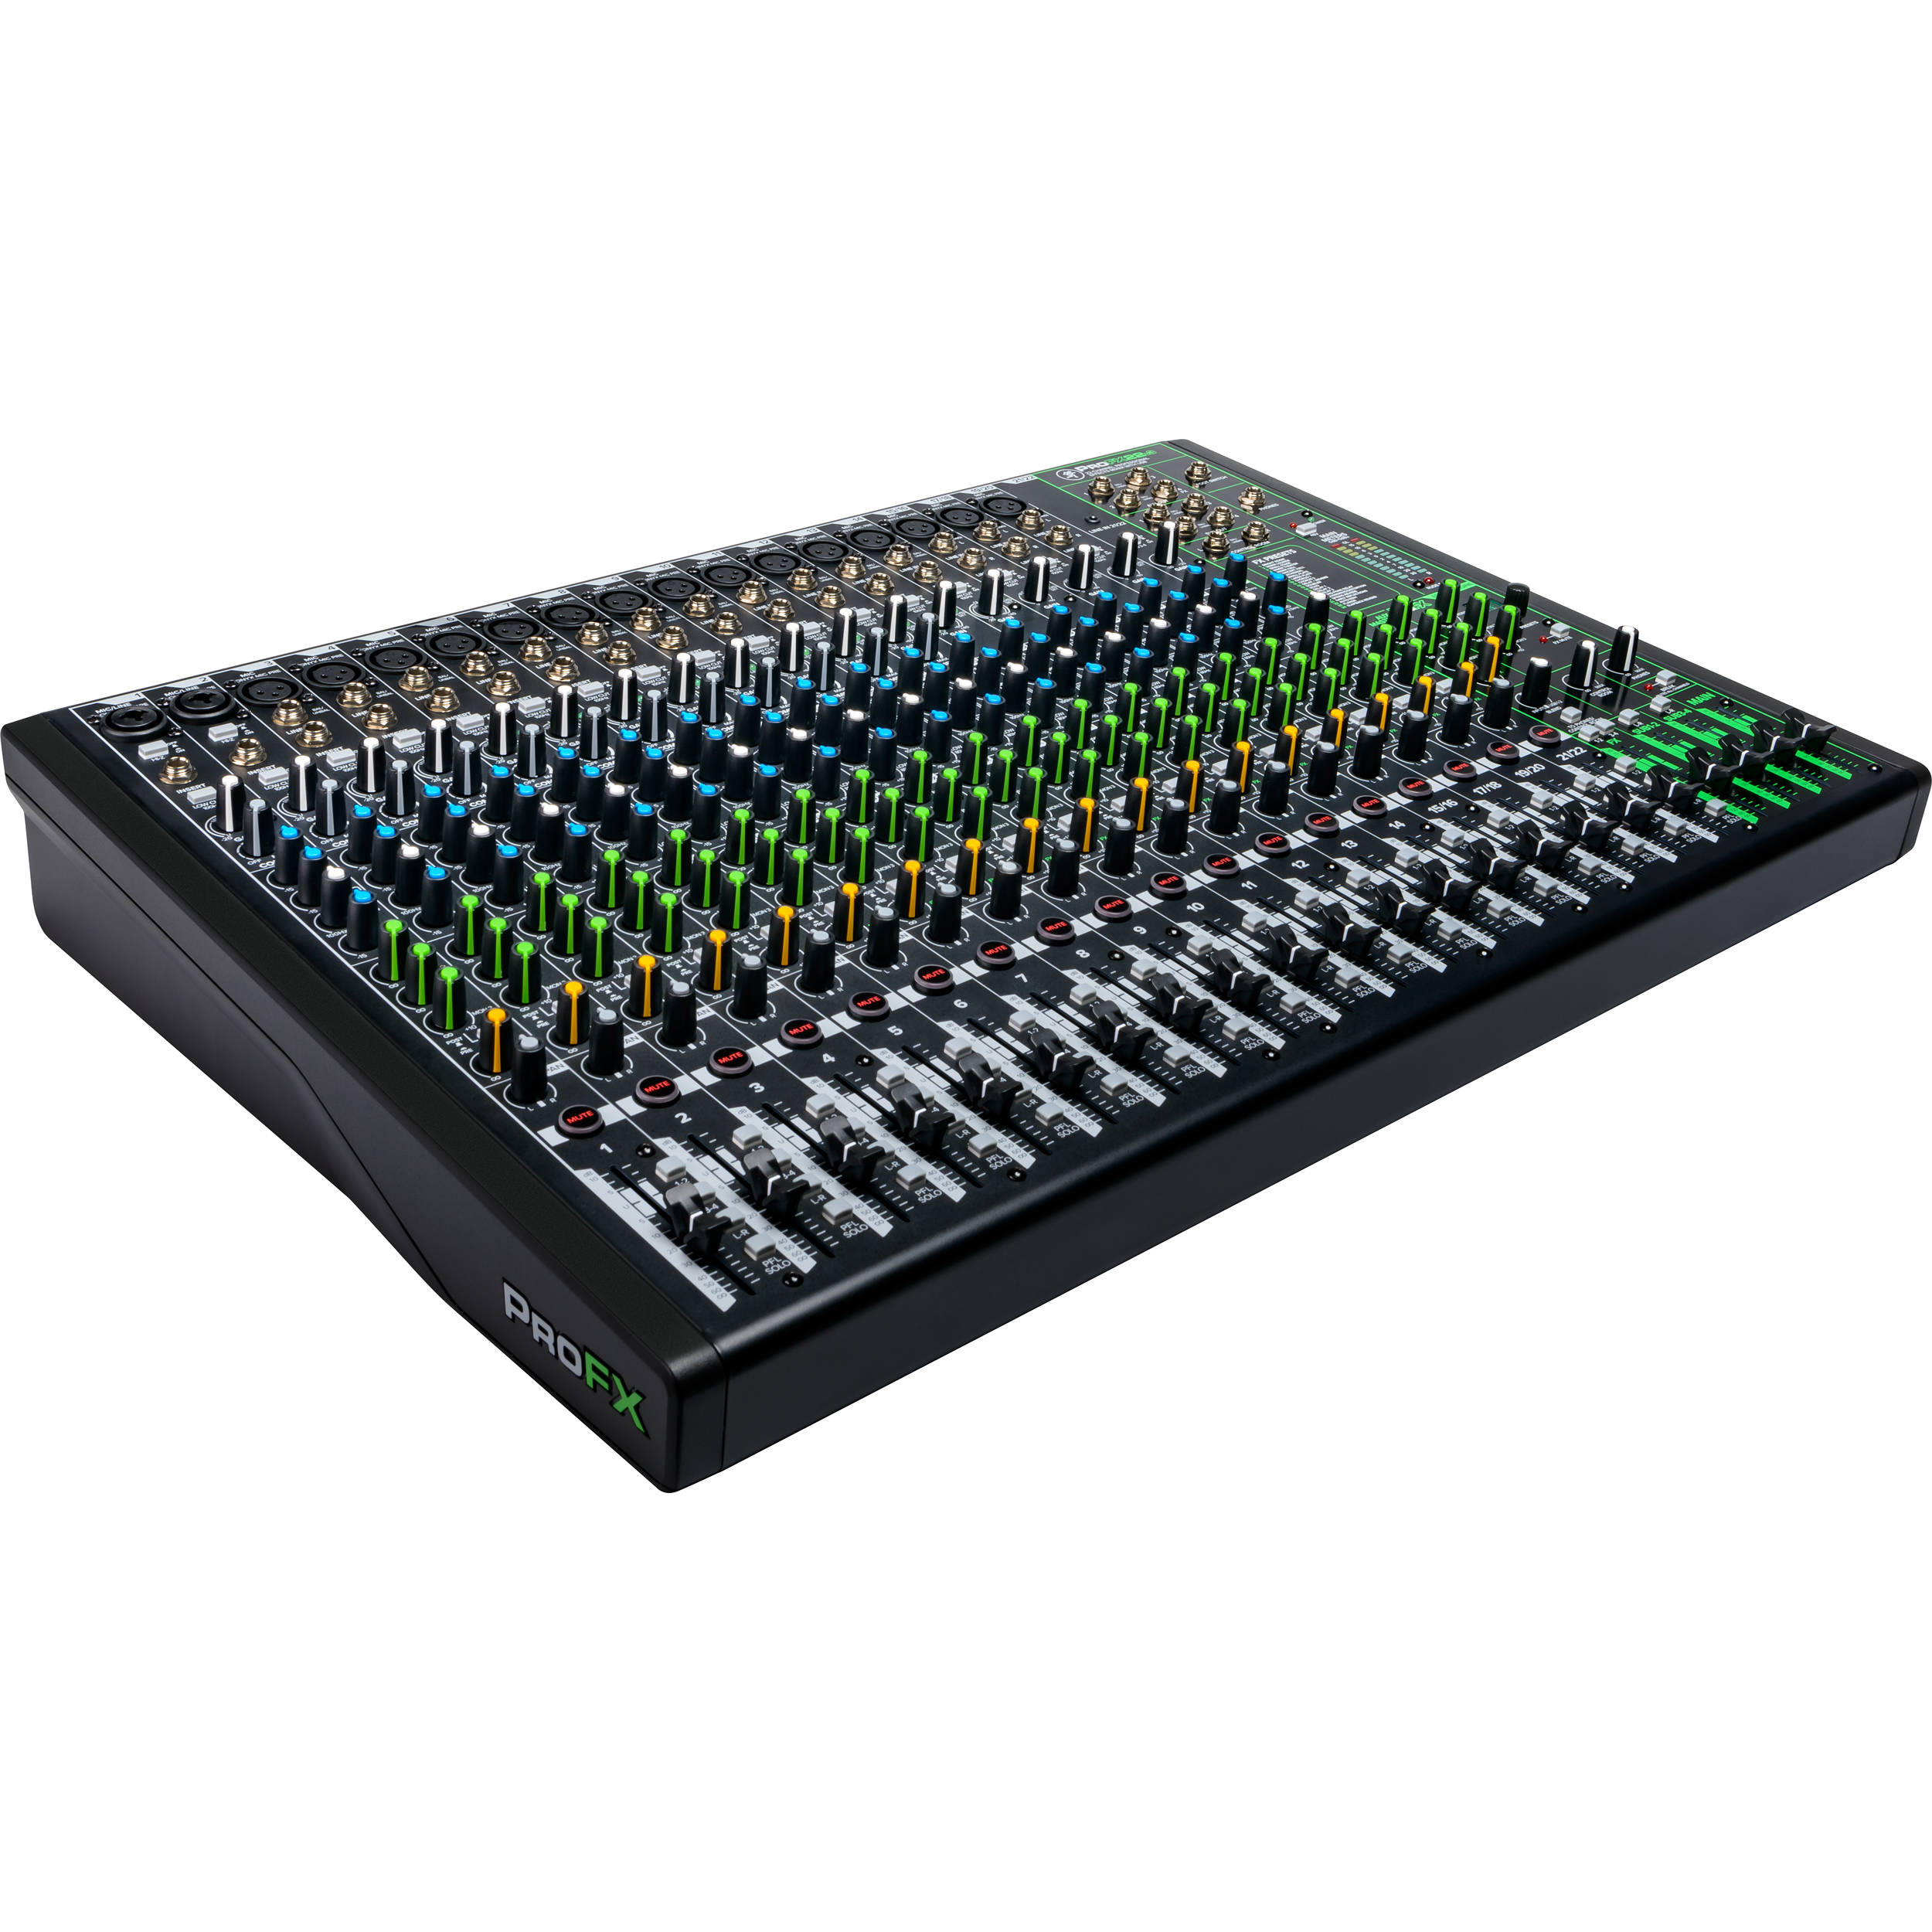 ProFX22 Cover Mackie Dust Cover for ProFX22 Mixer